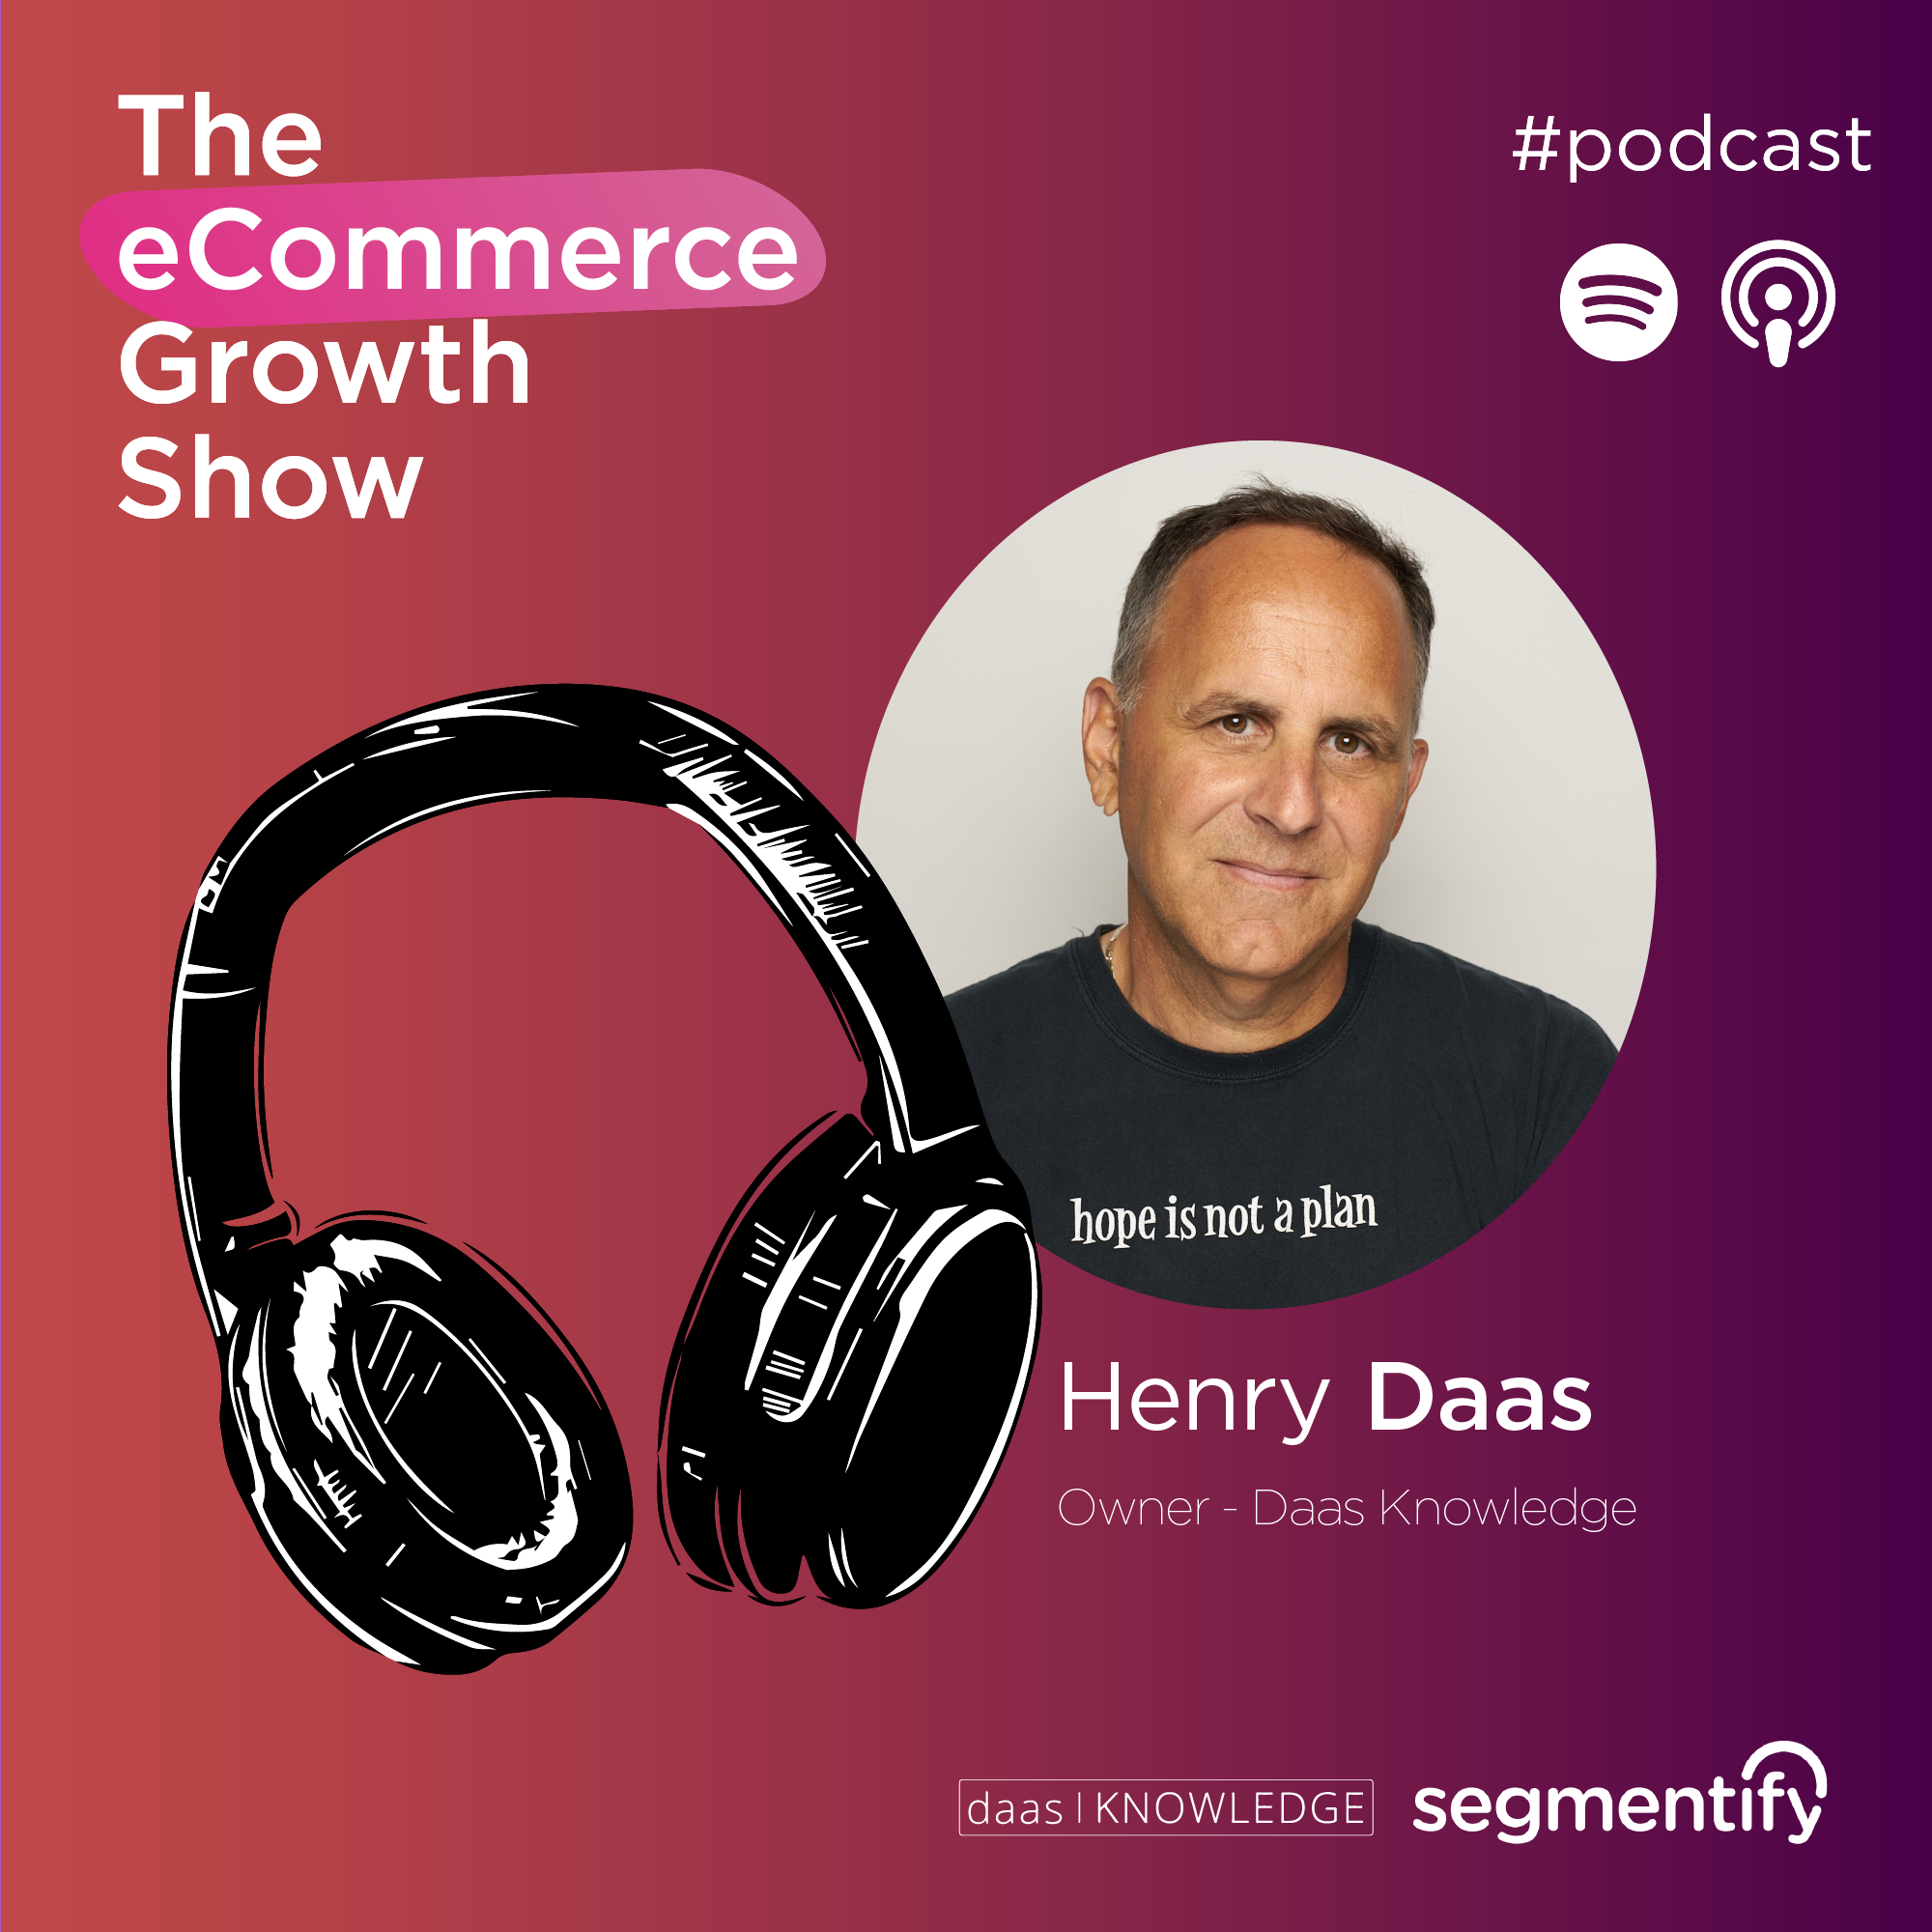 Artwork for podcast The eCommerce Growth Show